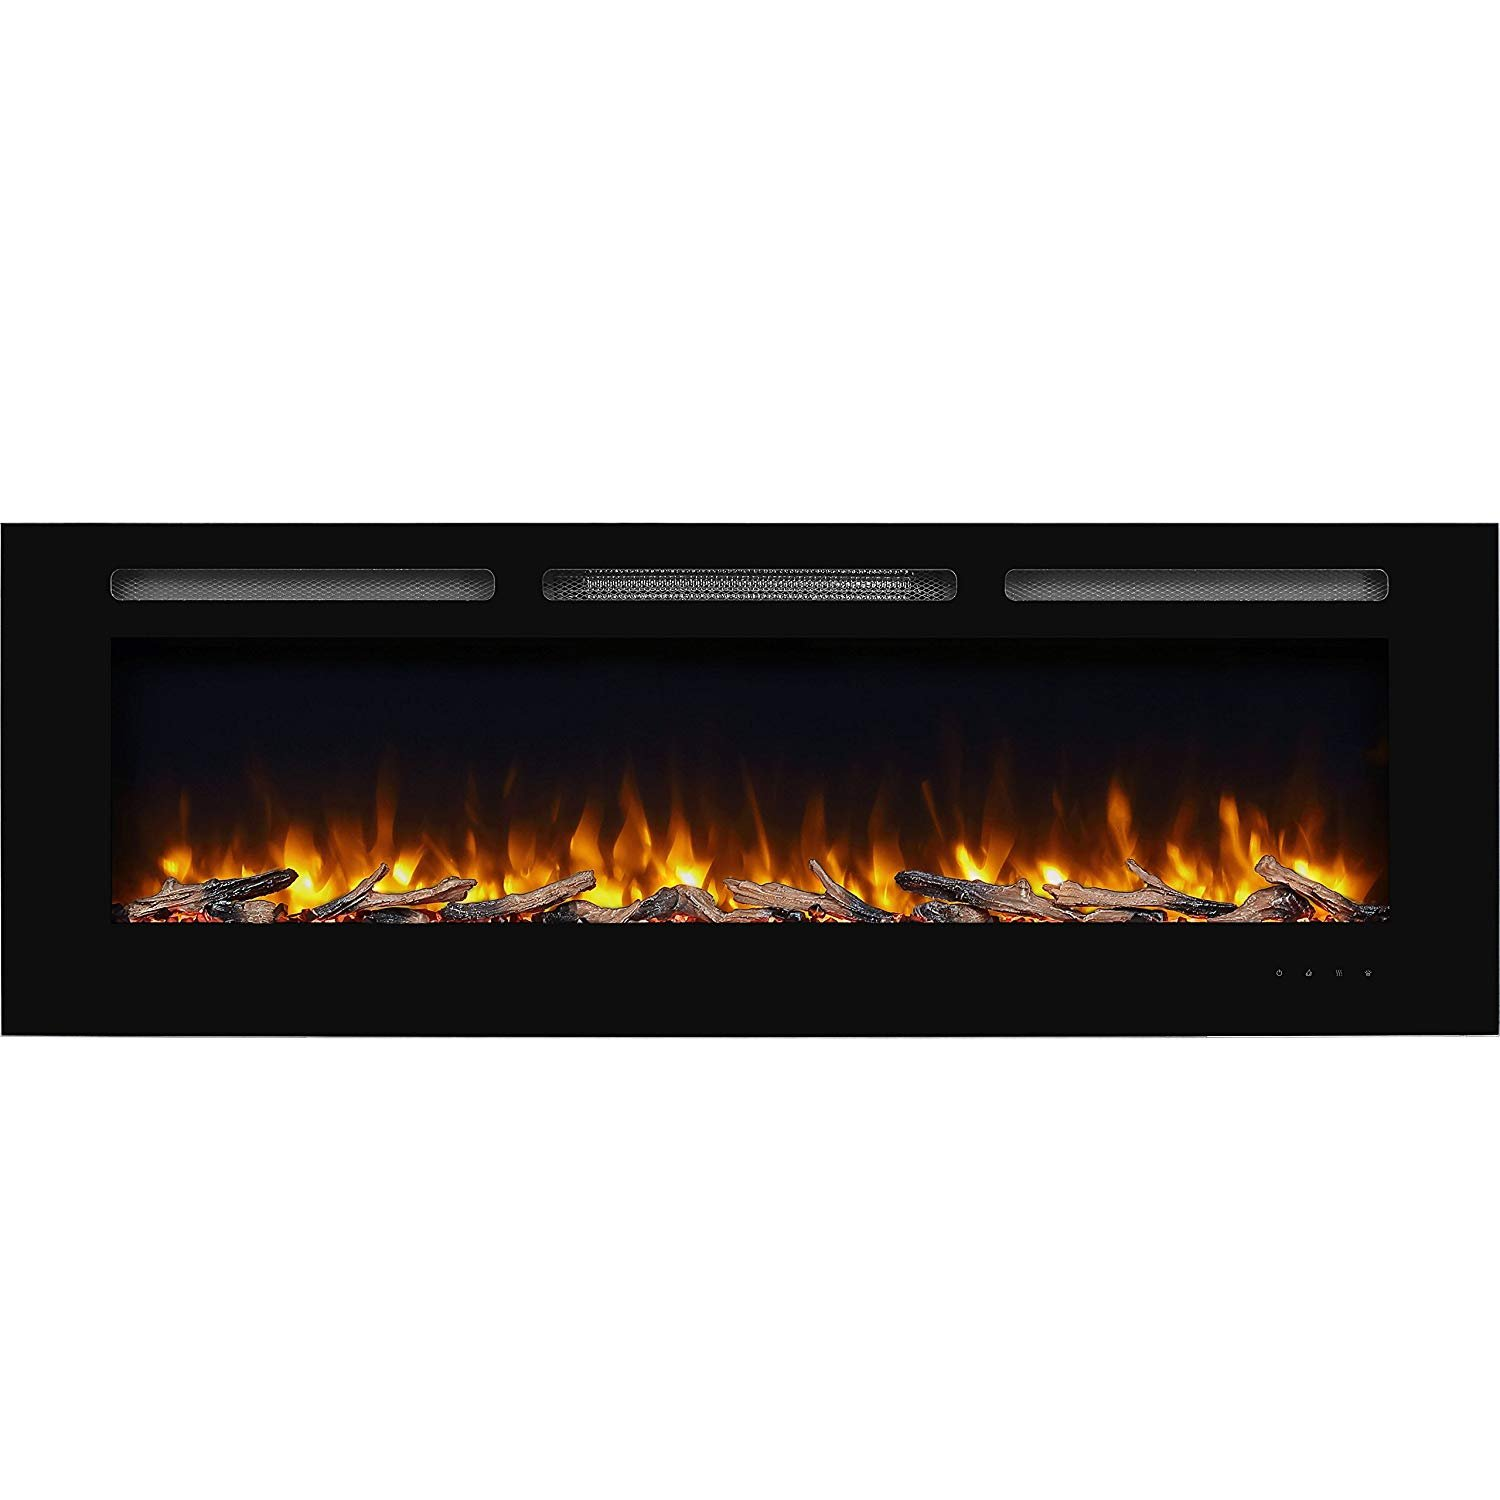 PuraFlame Alice 40 inches Recessed Electric Fireplace, Wall Mounted for 2 X 6 Stud, Log set and Crystal, 1500W heater_1